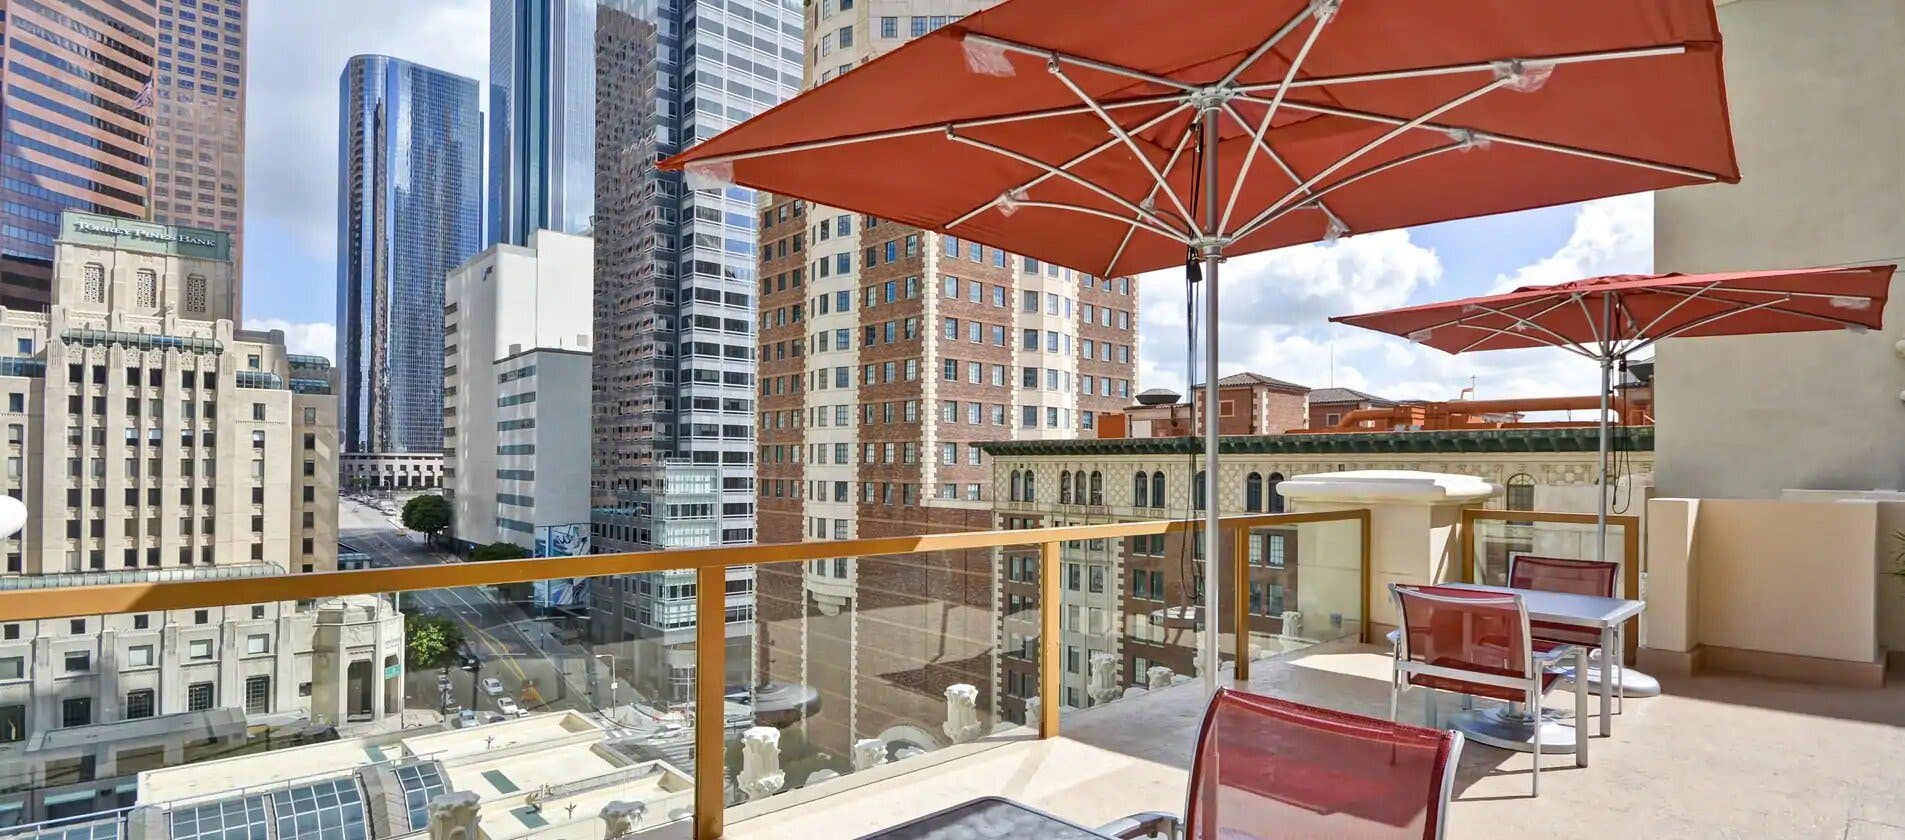 Rooftop seating at the Hilton Checkers Los Angeles